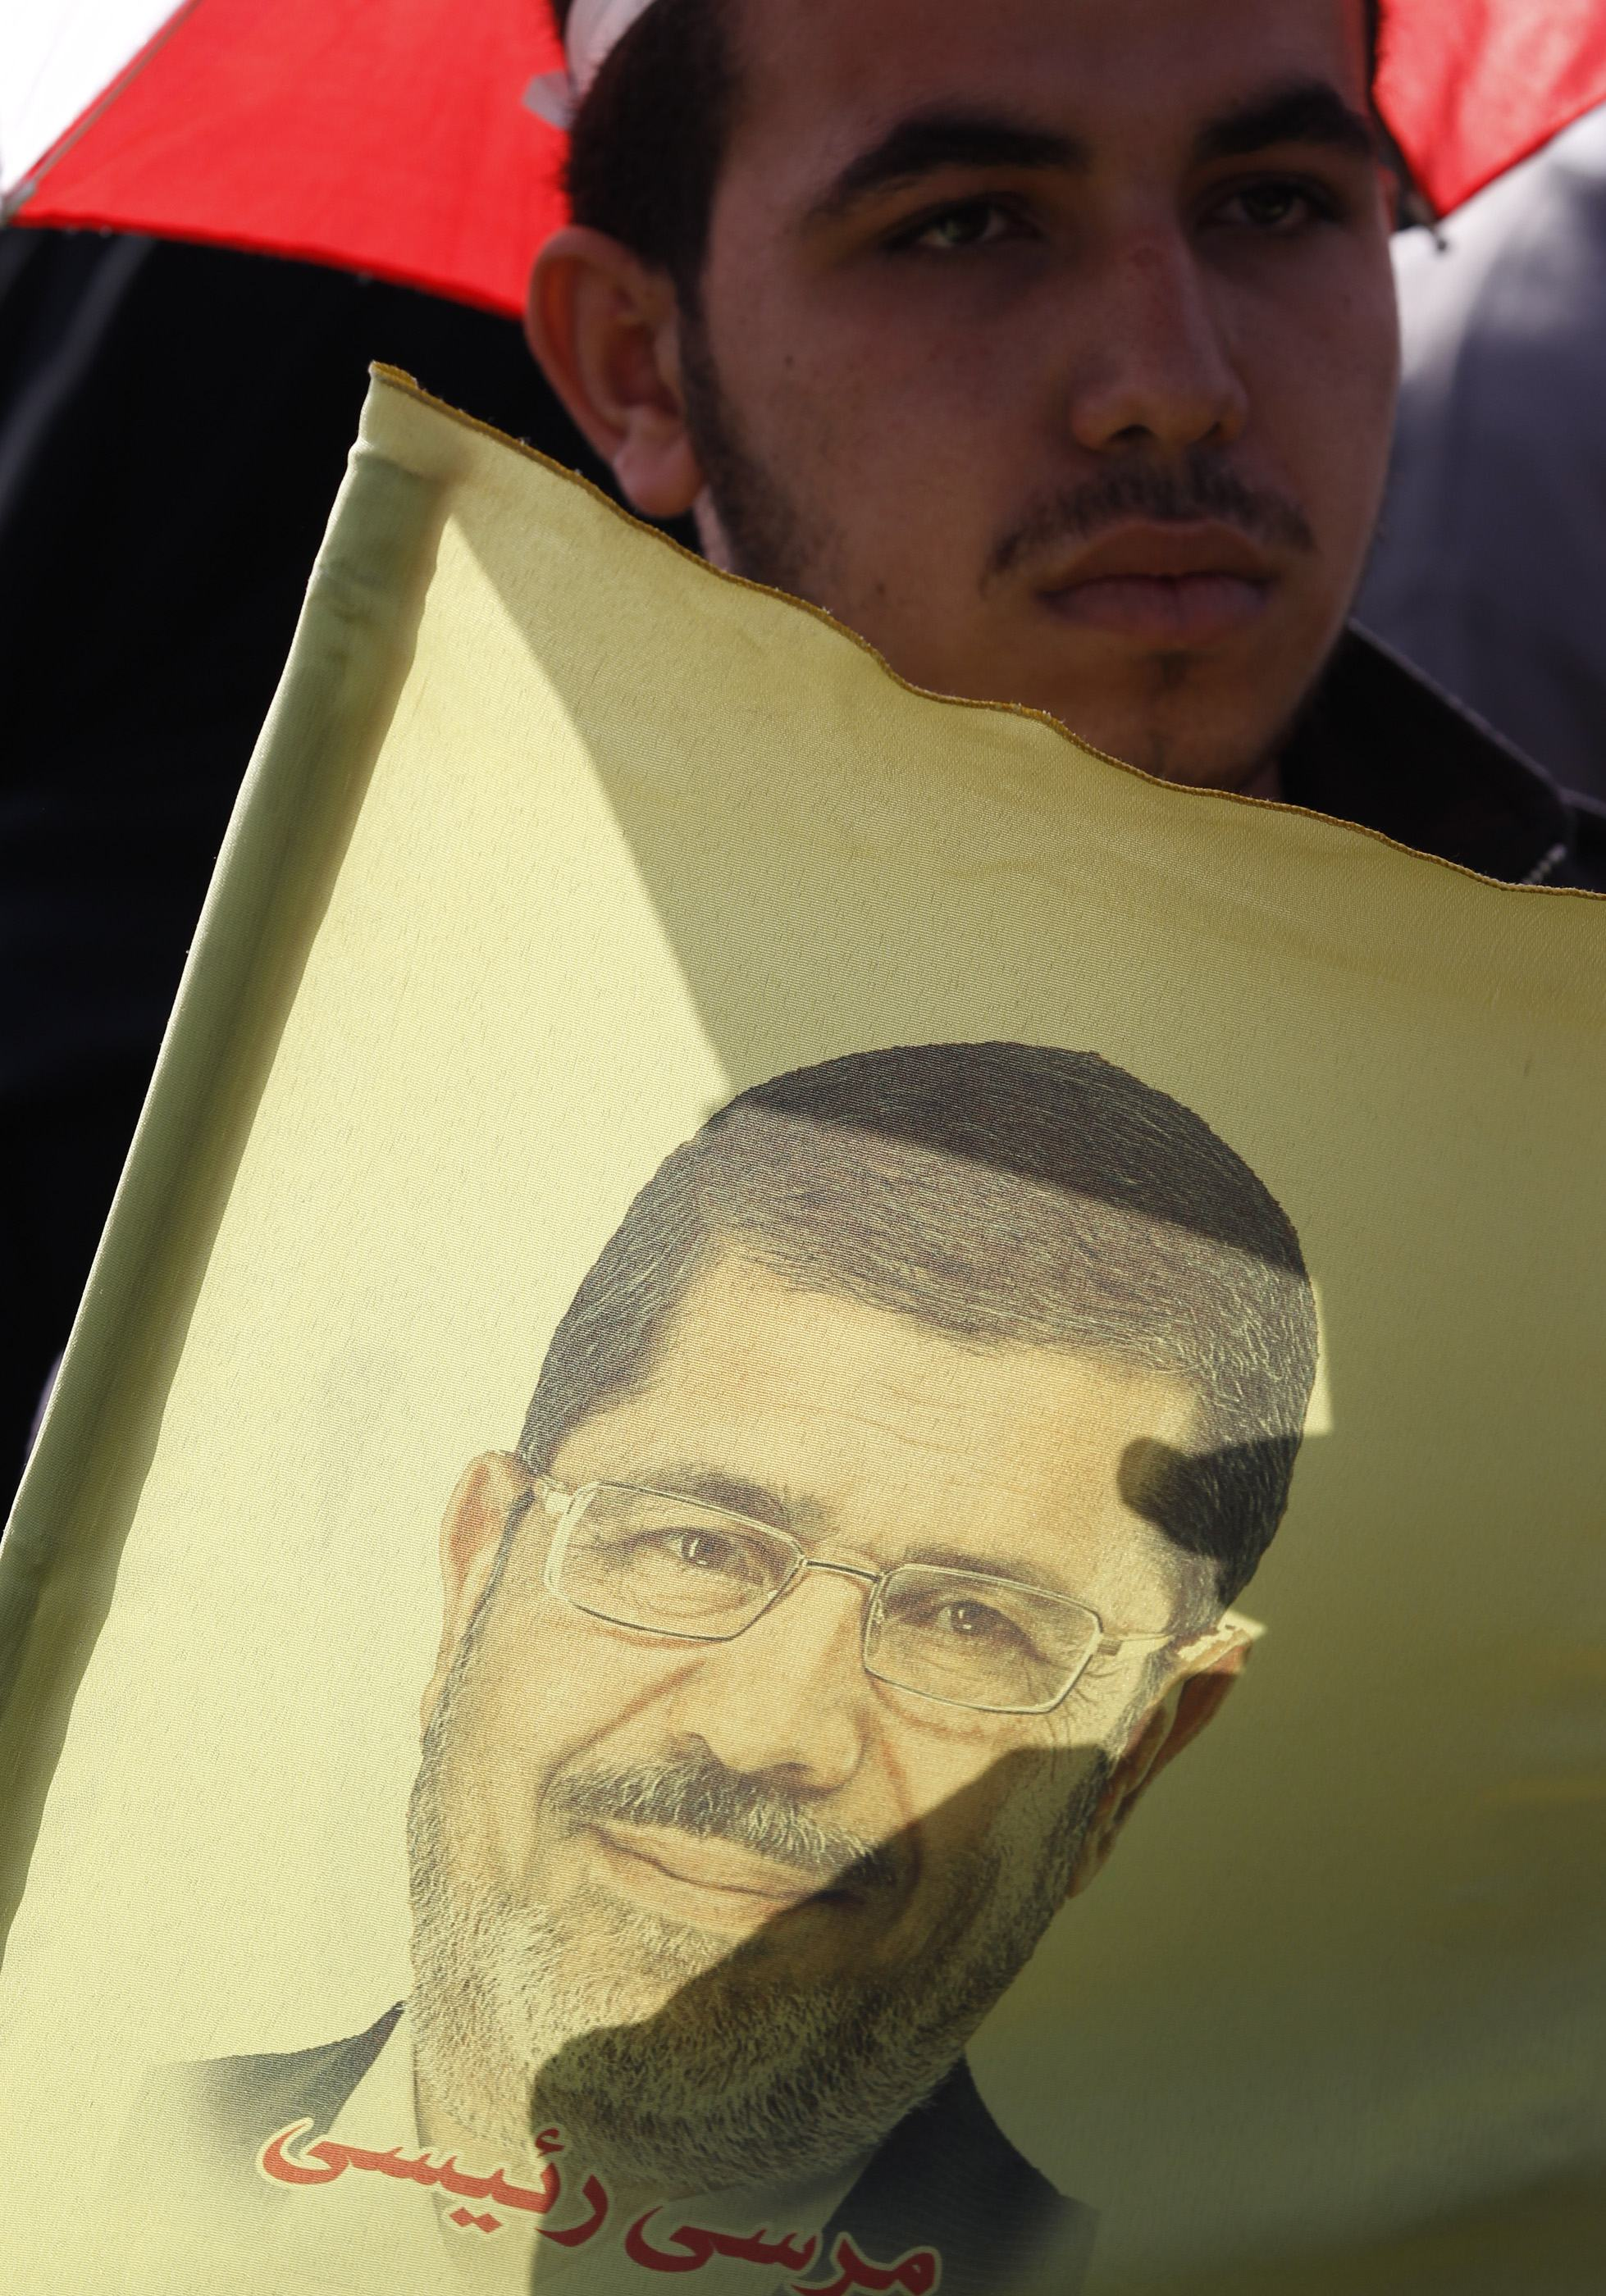 Mursi and aides formally face new espionage charges